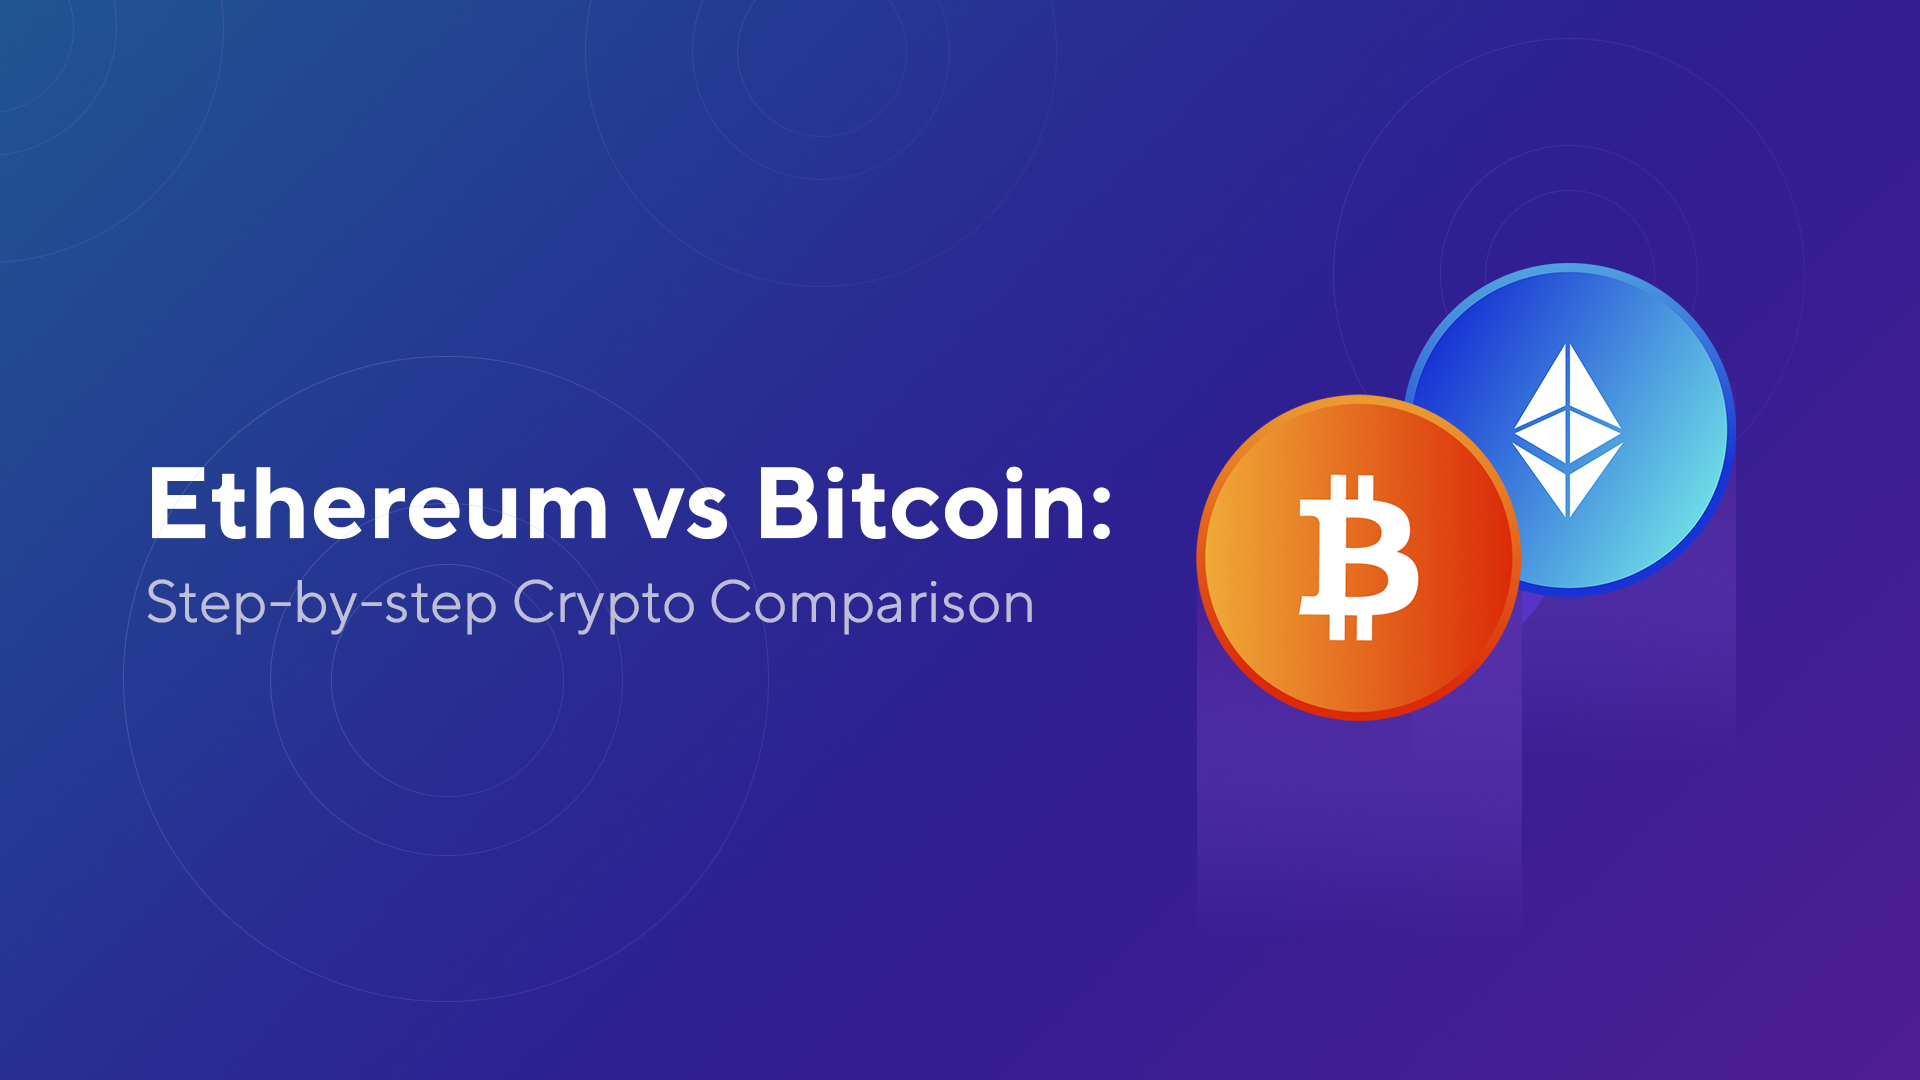 Ethereum vs Bitcoin: A Step-by-Step Cryptocurrency Comparison